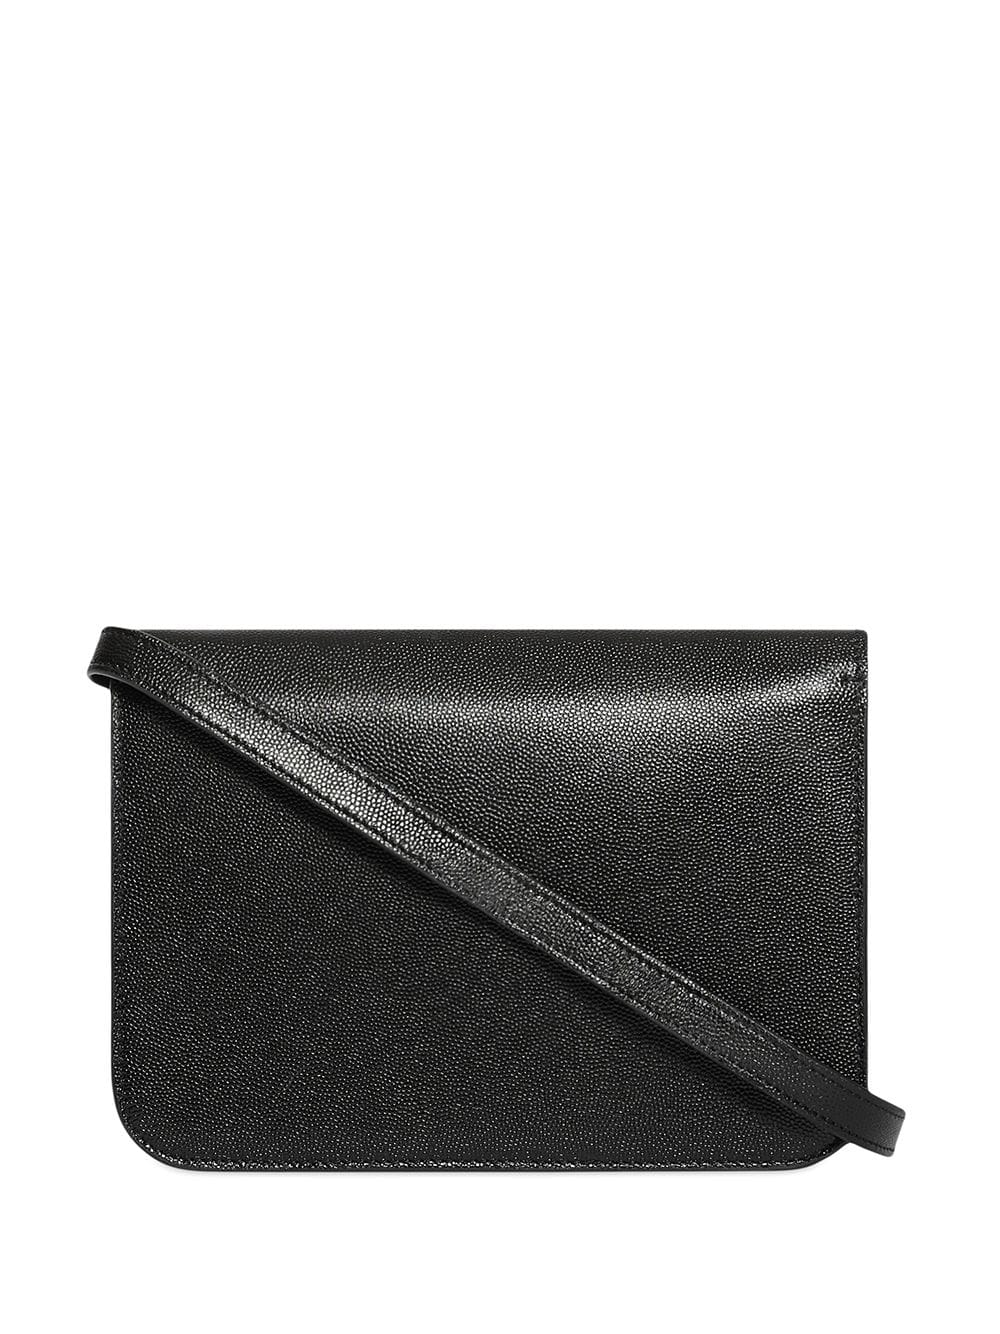 Picture of Burberry | Mini Tb Shoulder Bag